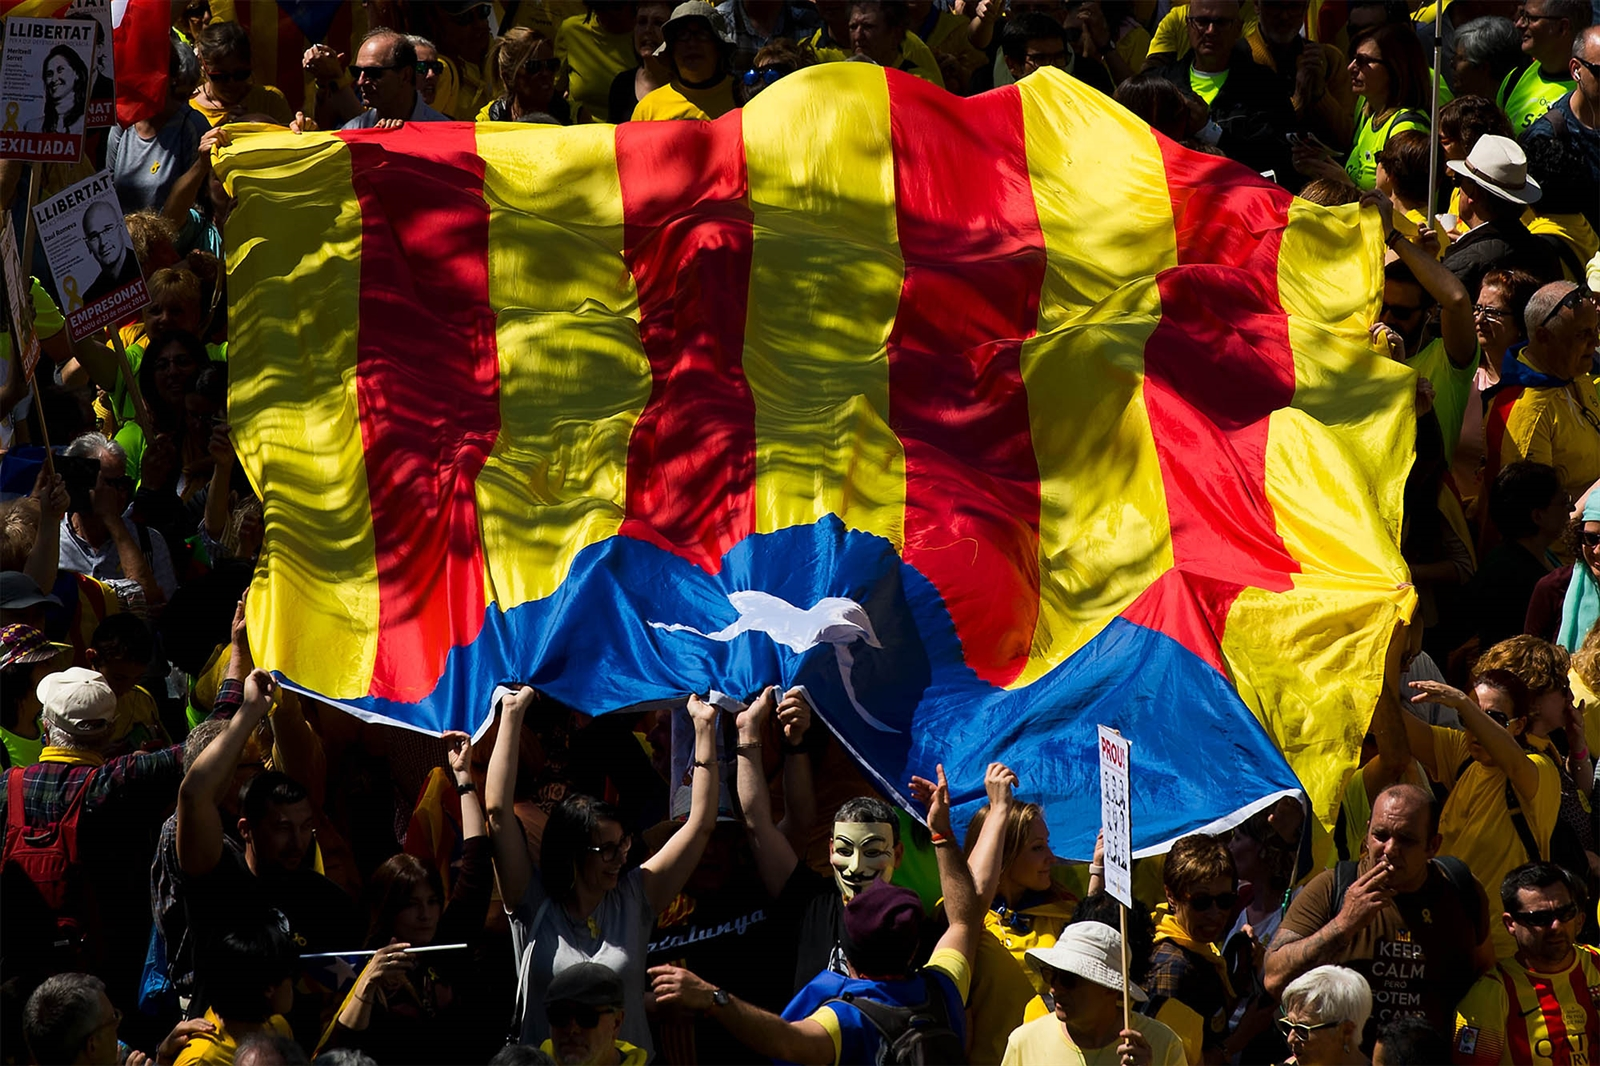 April 15, 2018 - Spain: Catalonia Independence supporters march during a demonstration in Barcelona, Spain. Demonstrators marched in support of jailed Catalonian politicians and Pro-Independence social movement leaders.